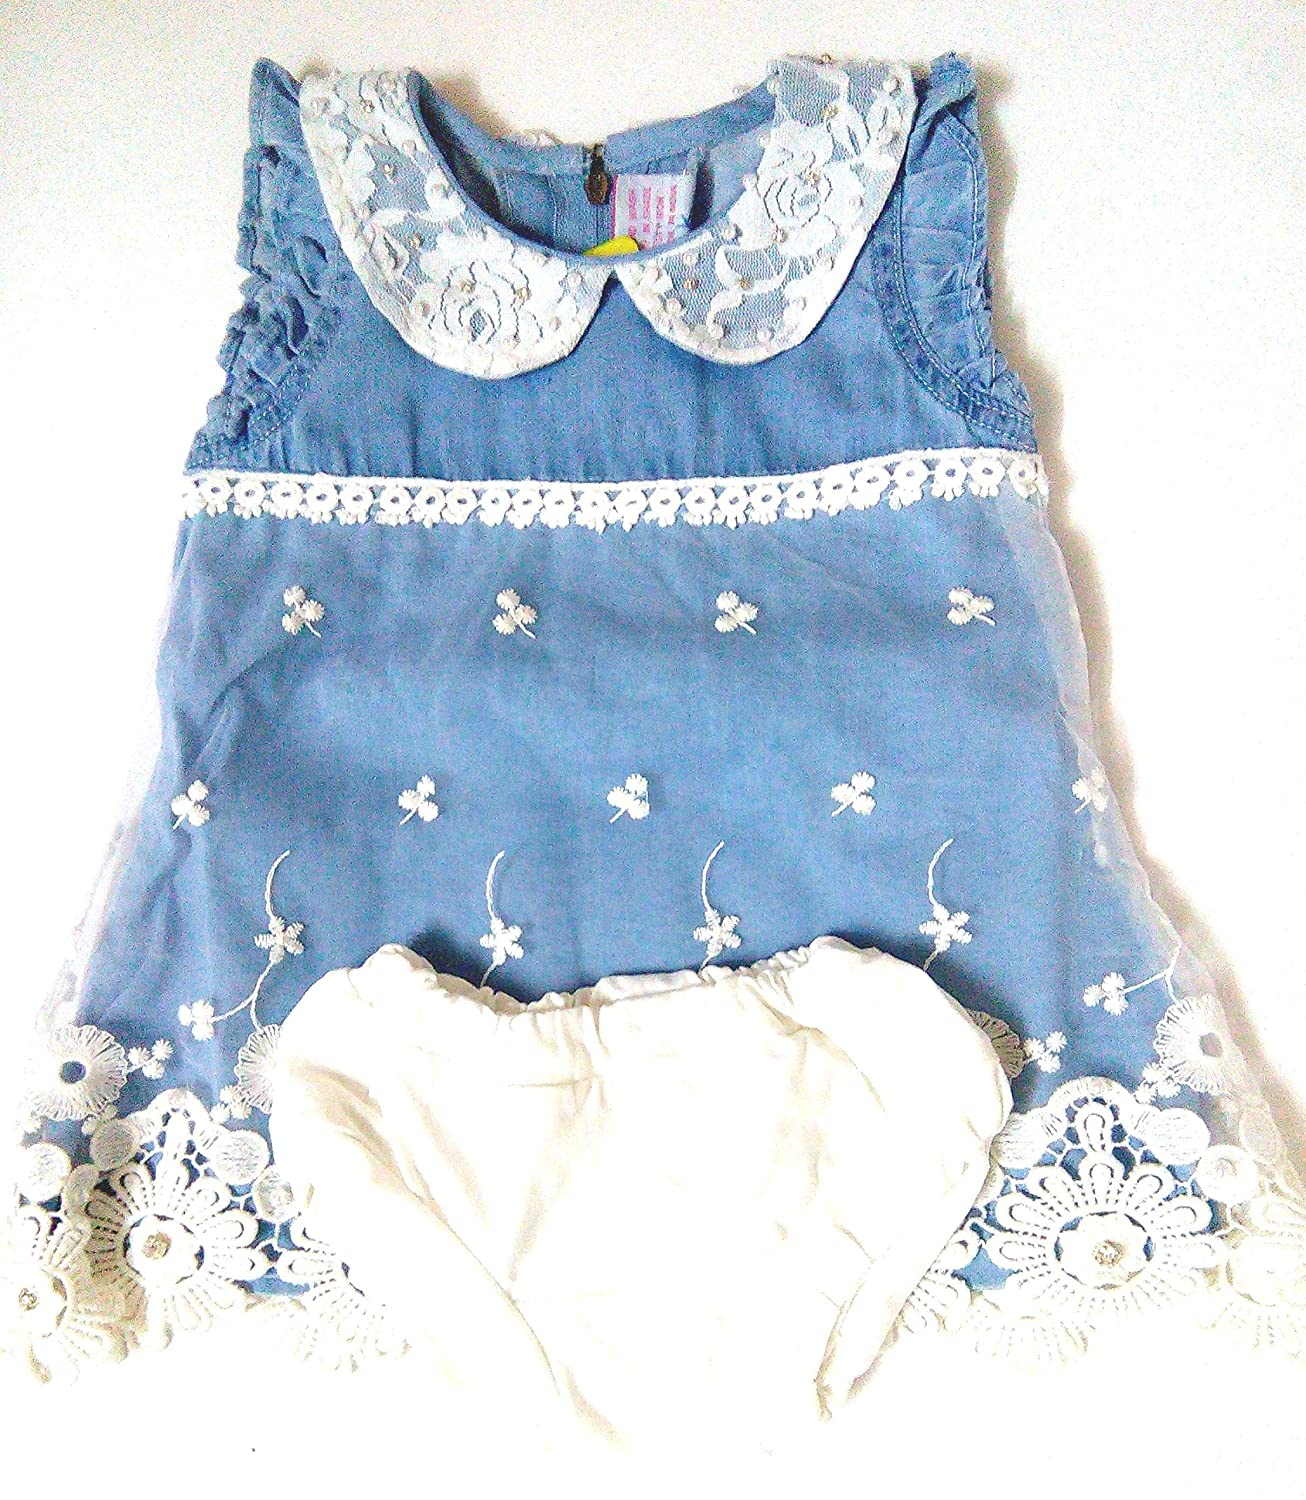 Buy PARTYWEAR BABY GIRL DENIM DRESS line at Low Prices in India